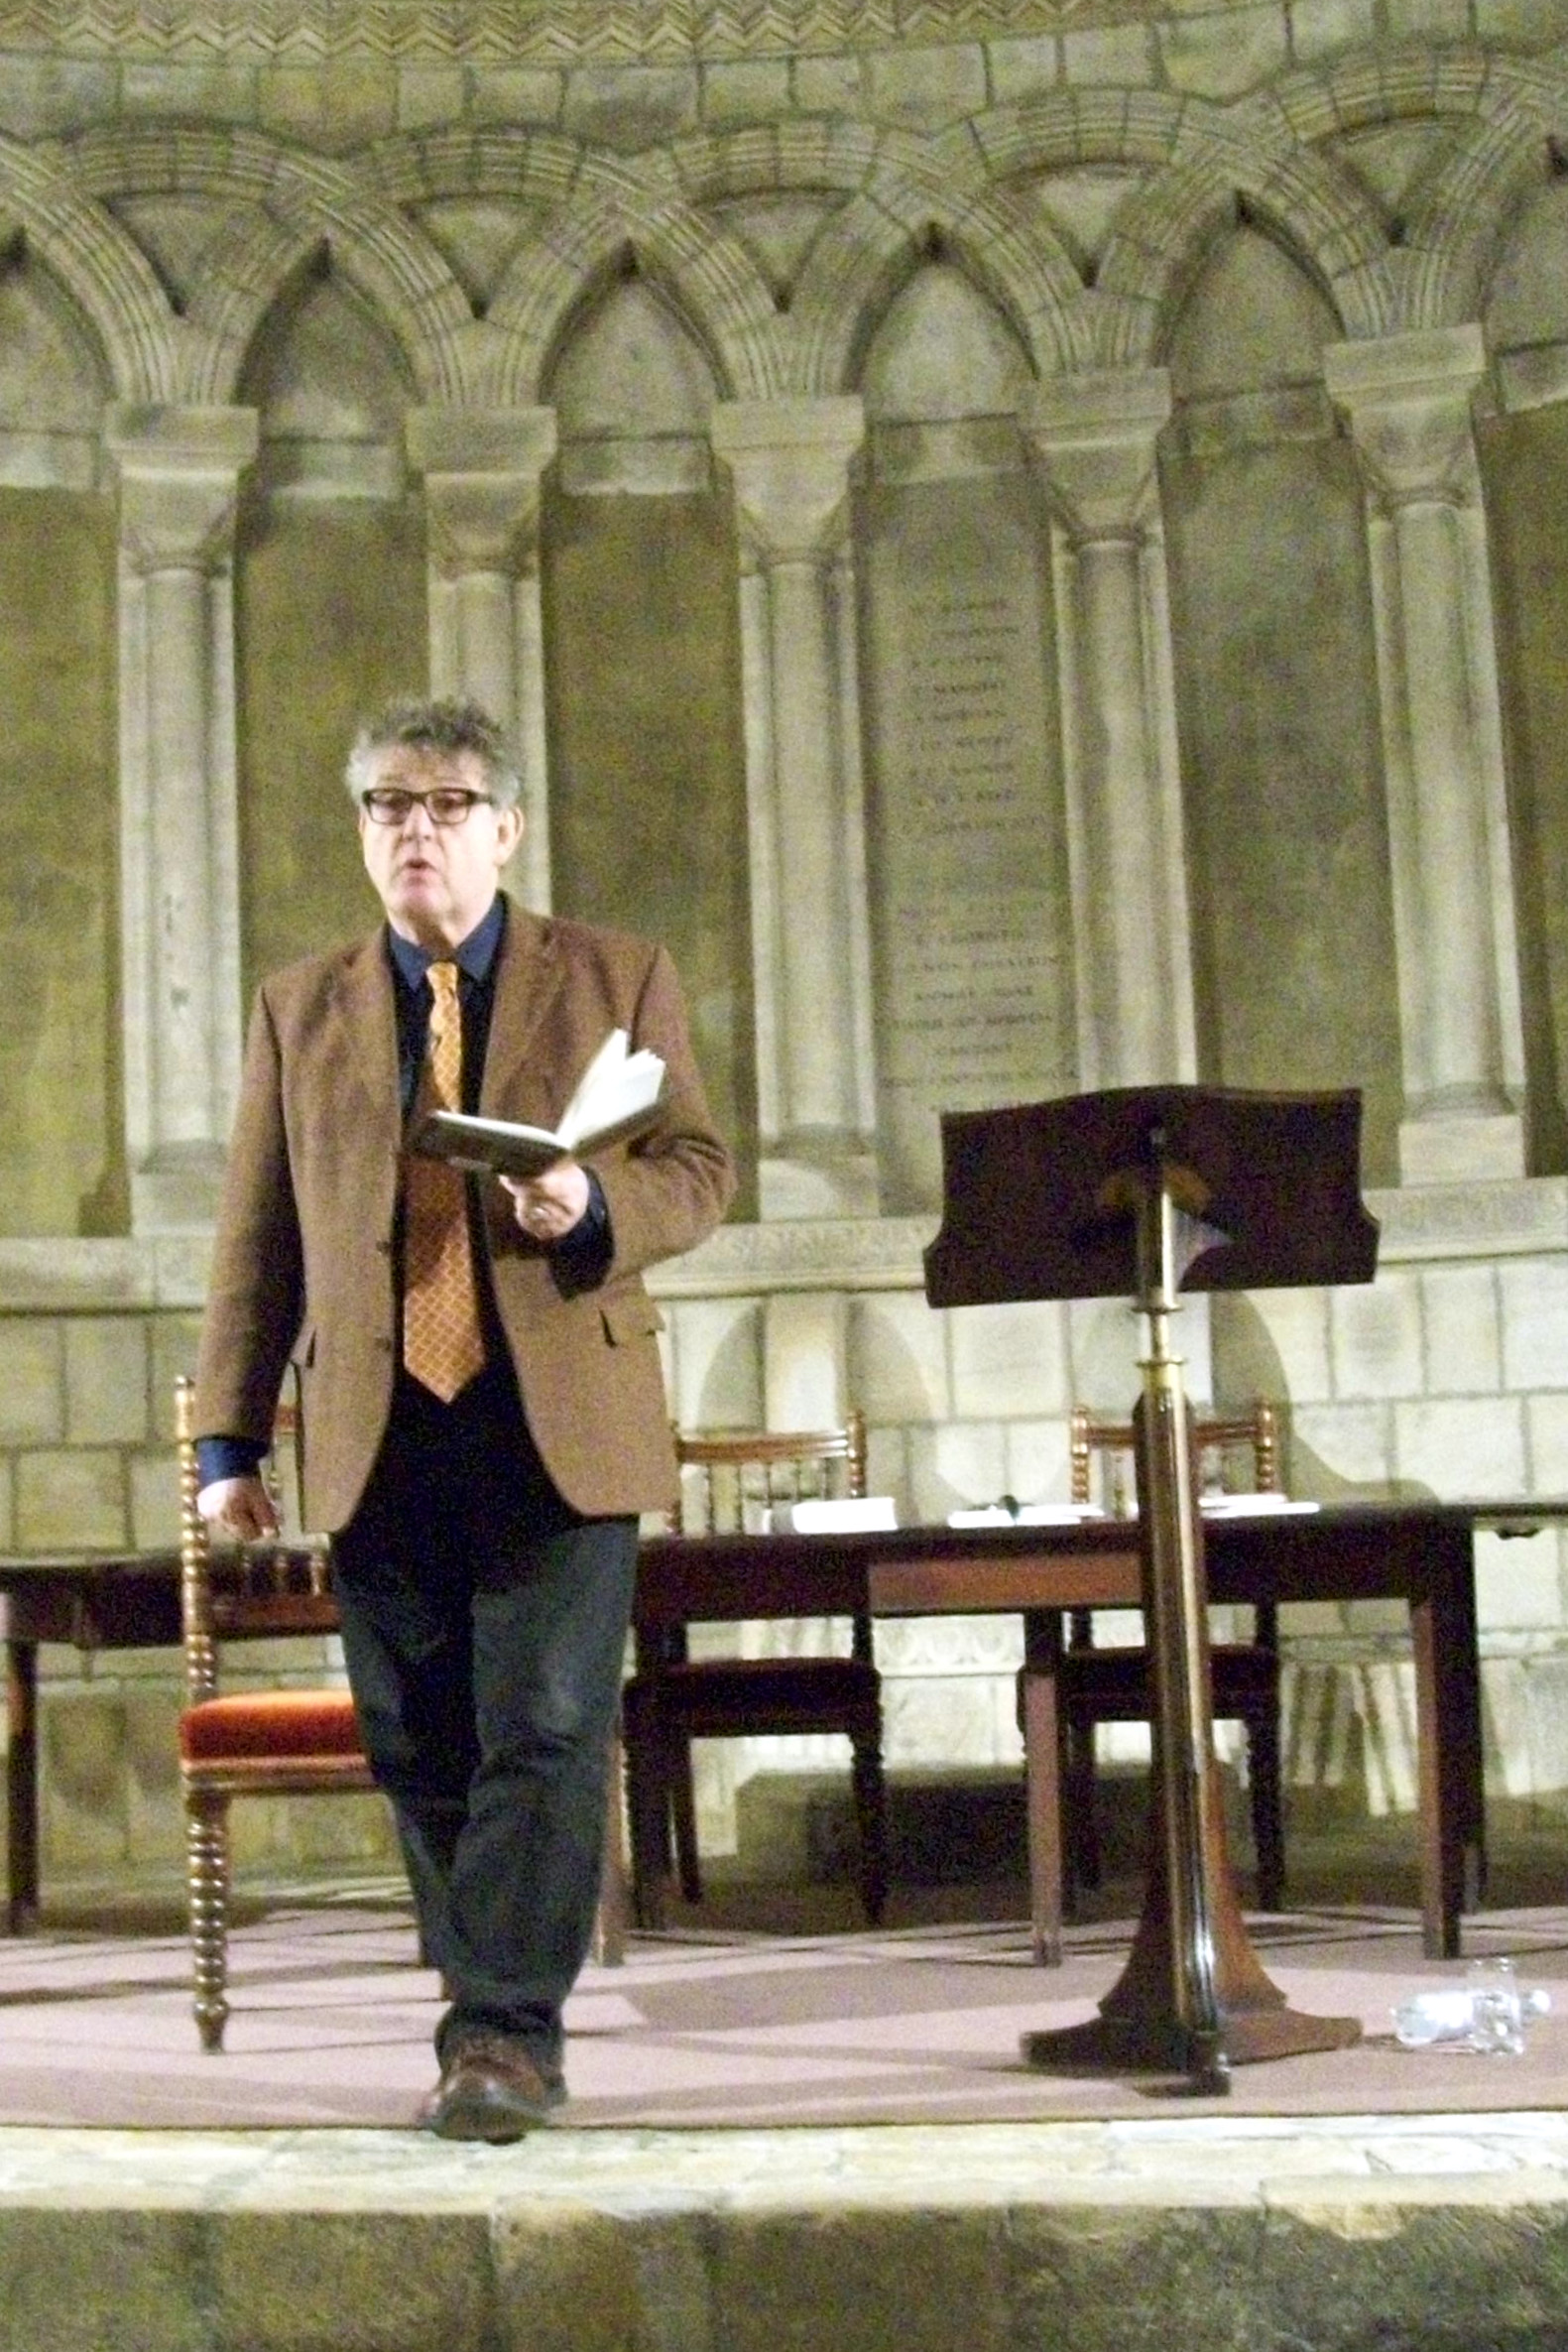 Paul Muldoon, 2013.